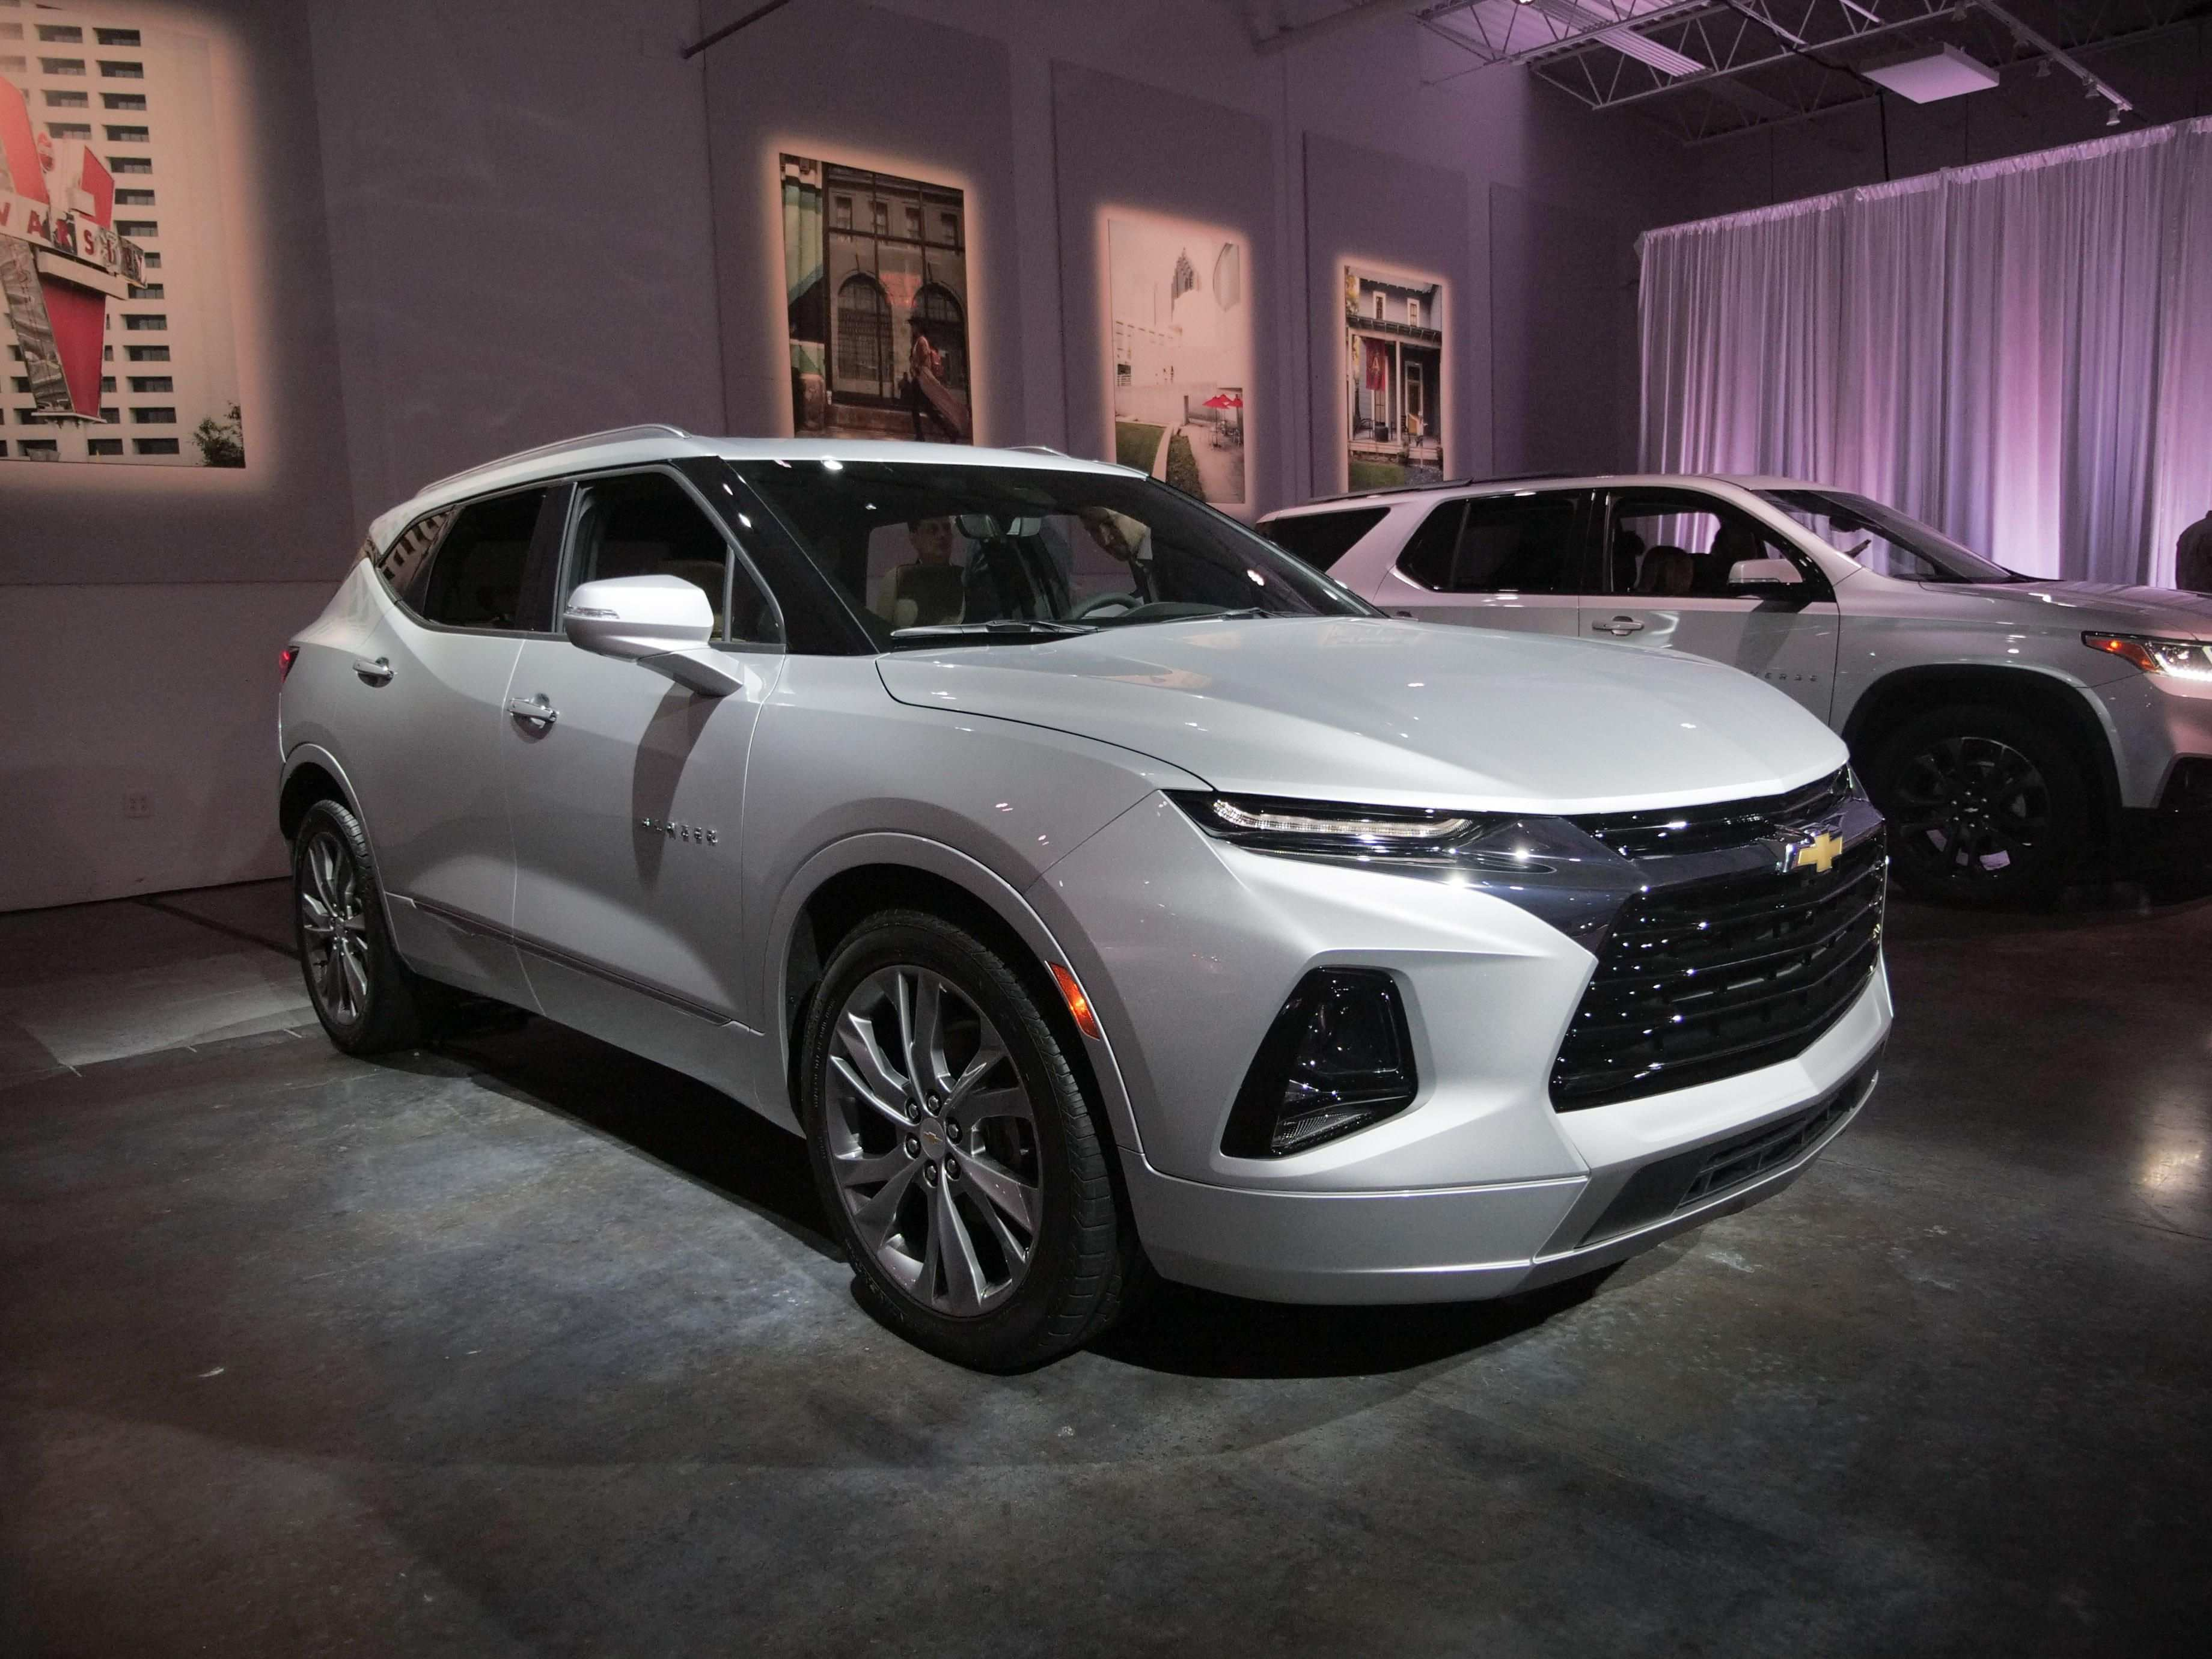 95 The Best 2019 Chevy Trailblazer Redesign And Concept